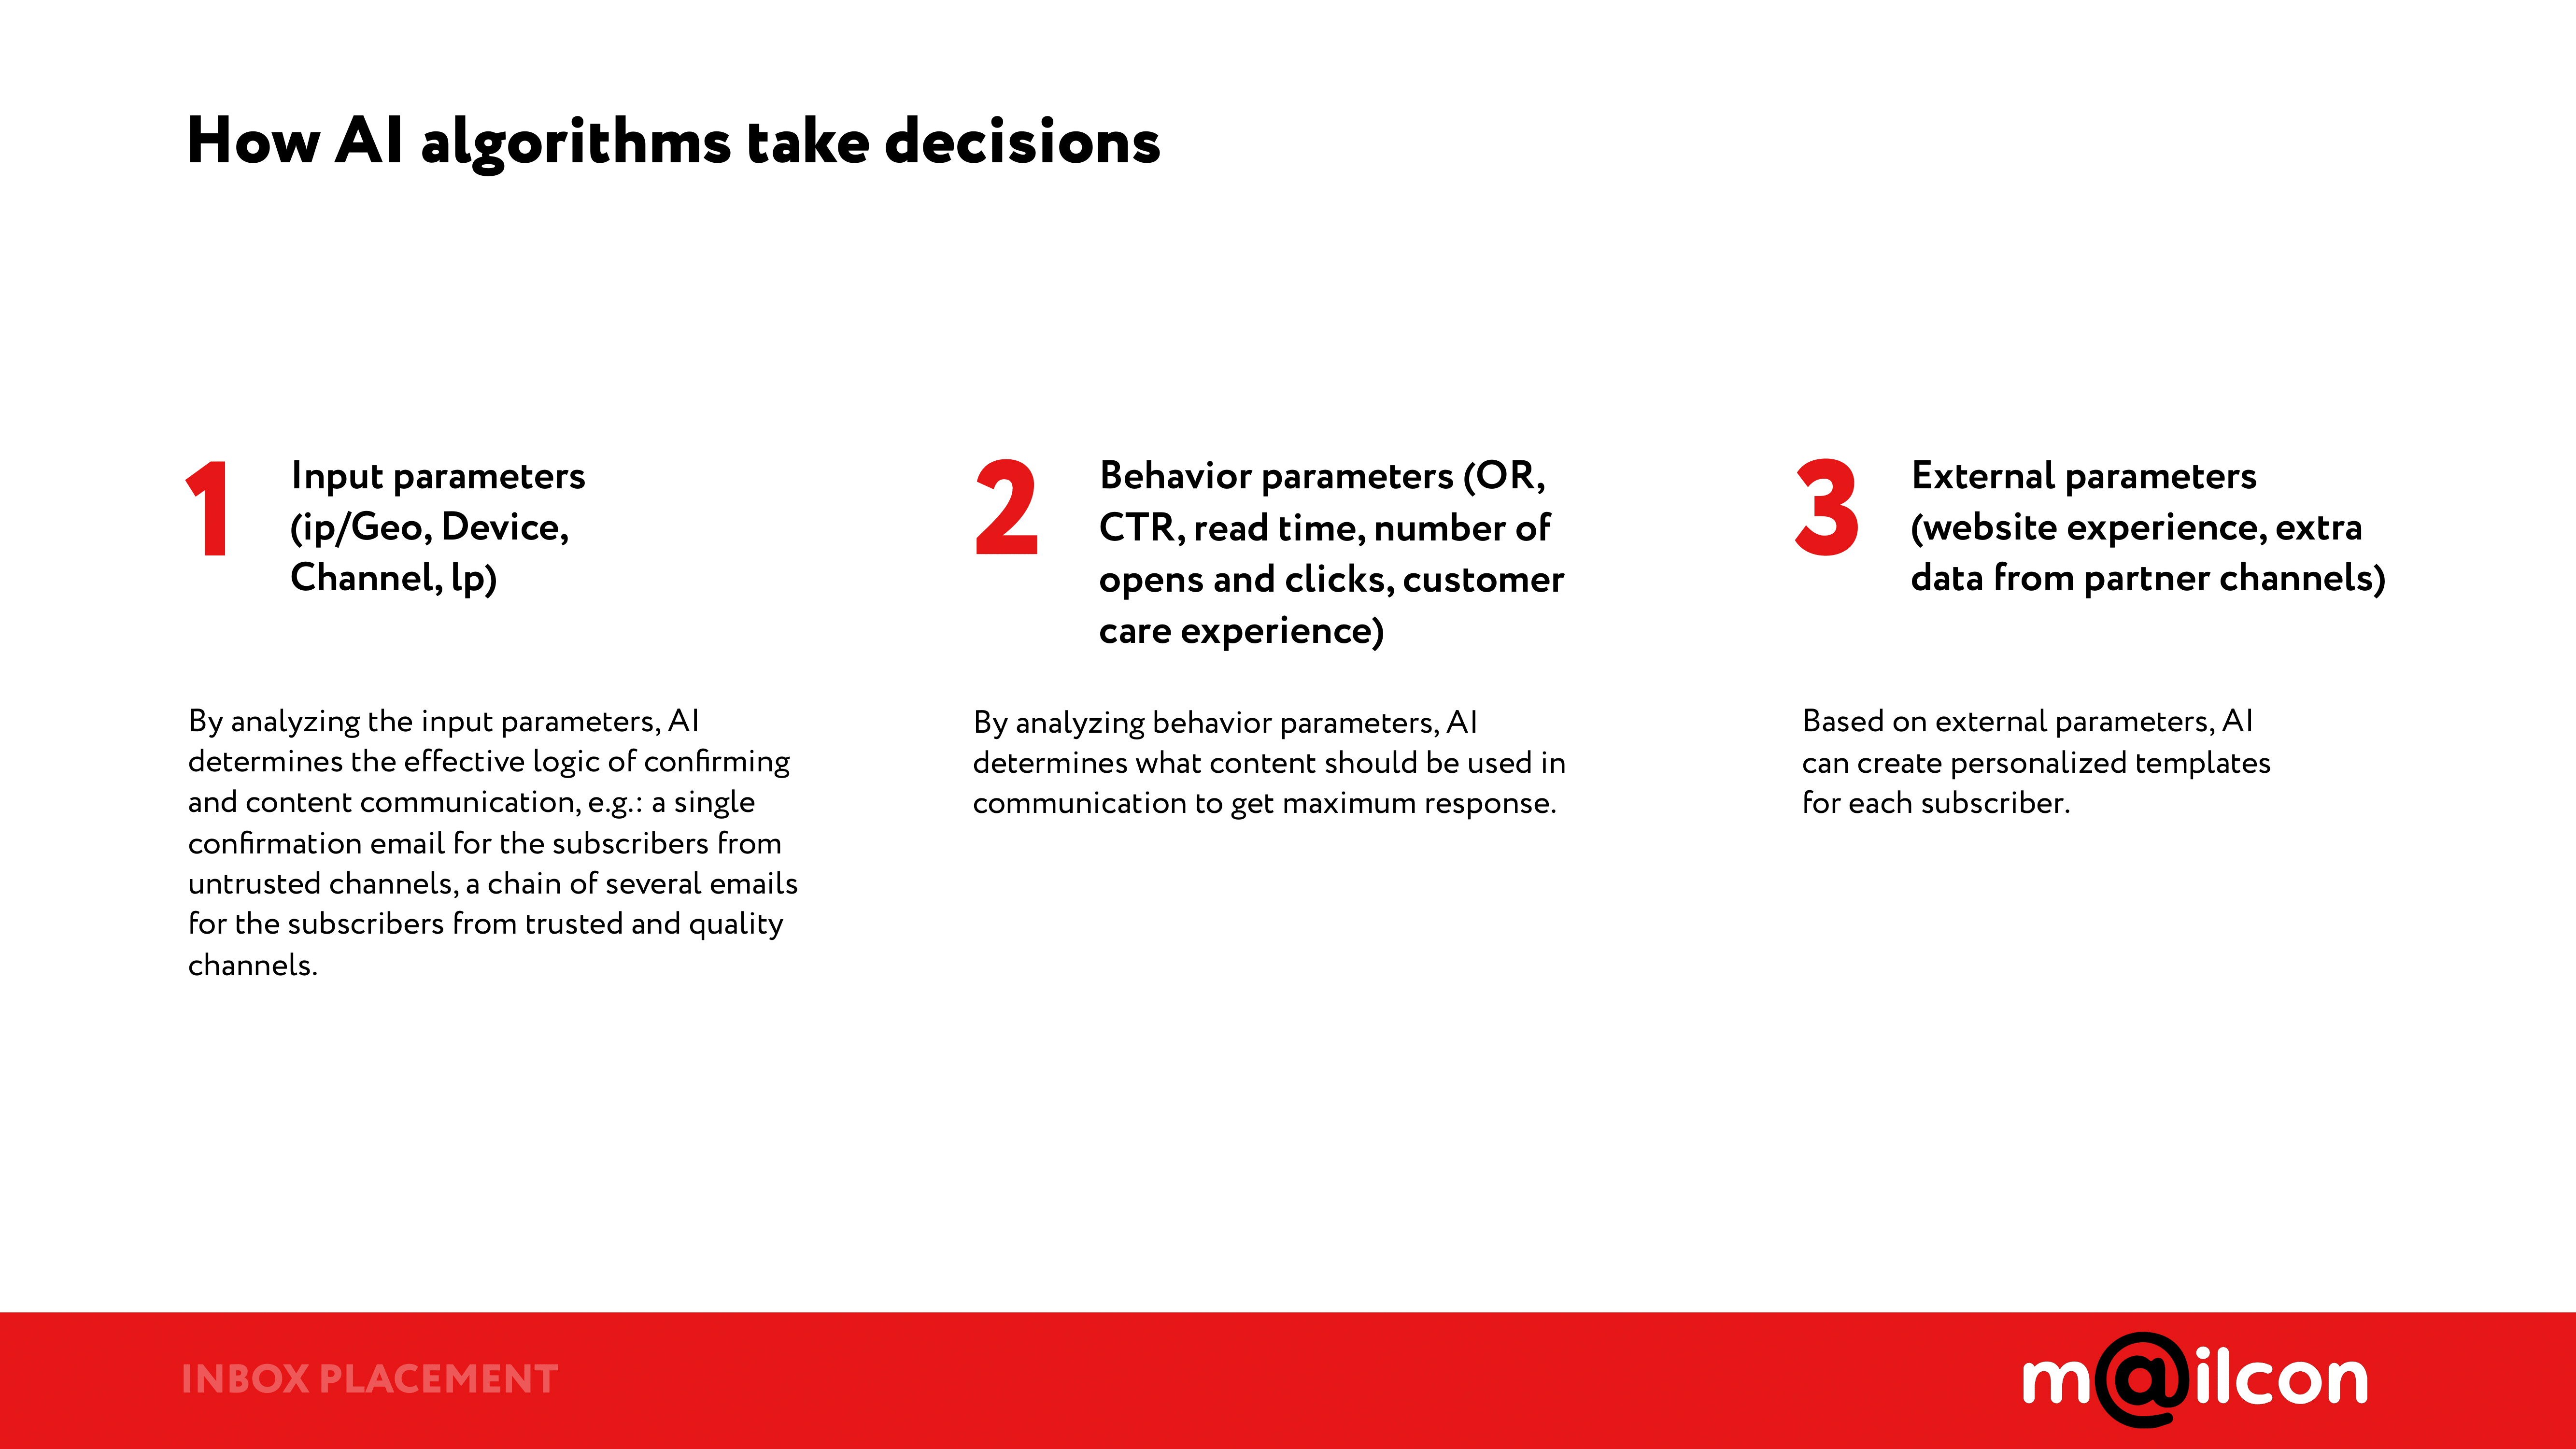 AI algorithms take decisions